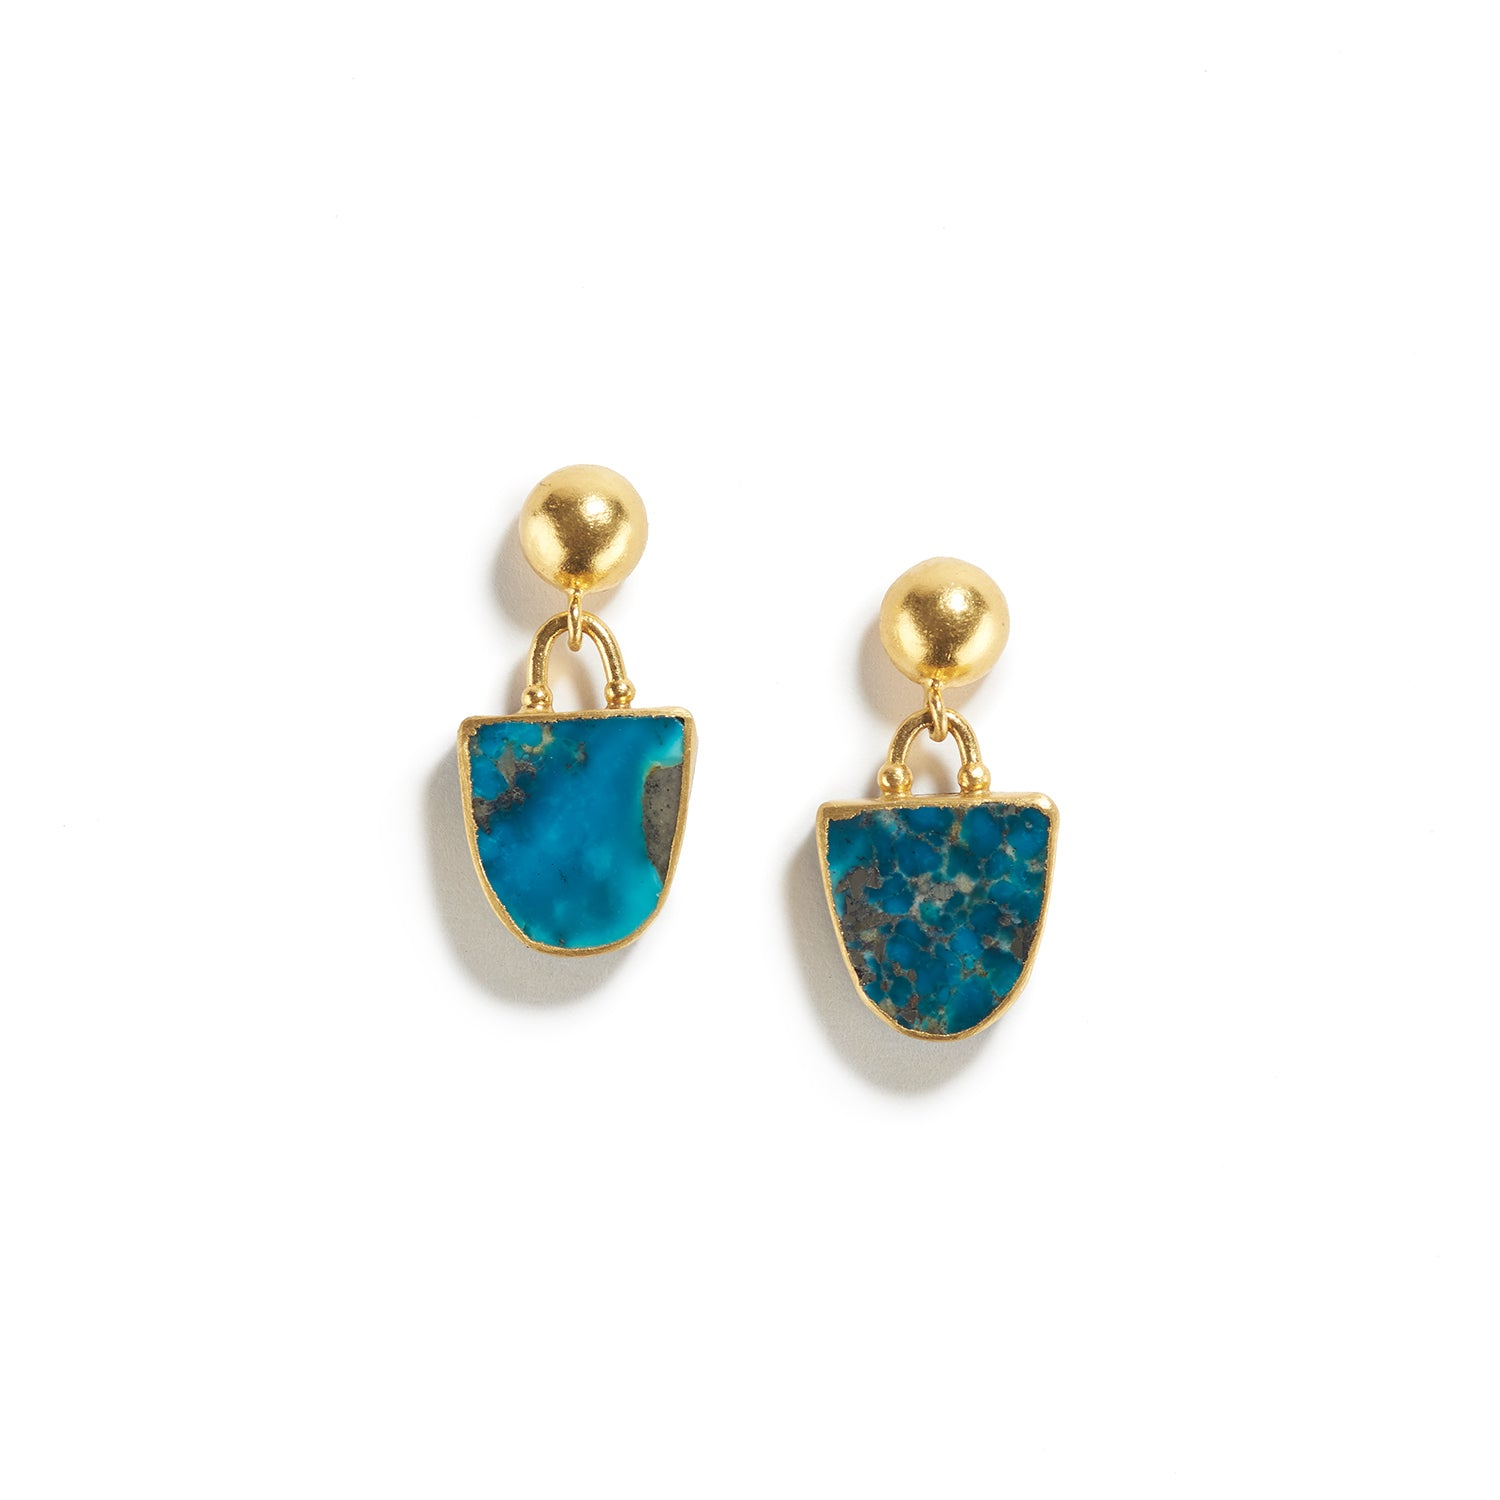 Turquoise Earrings with Gold and Silver